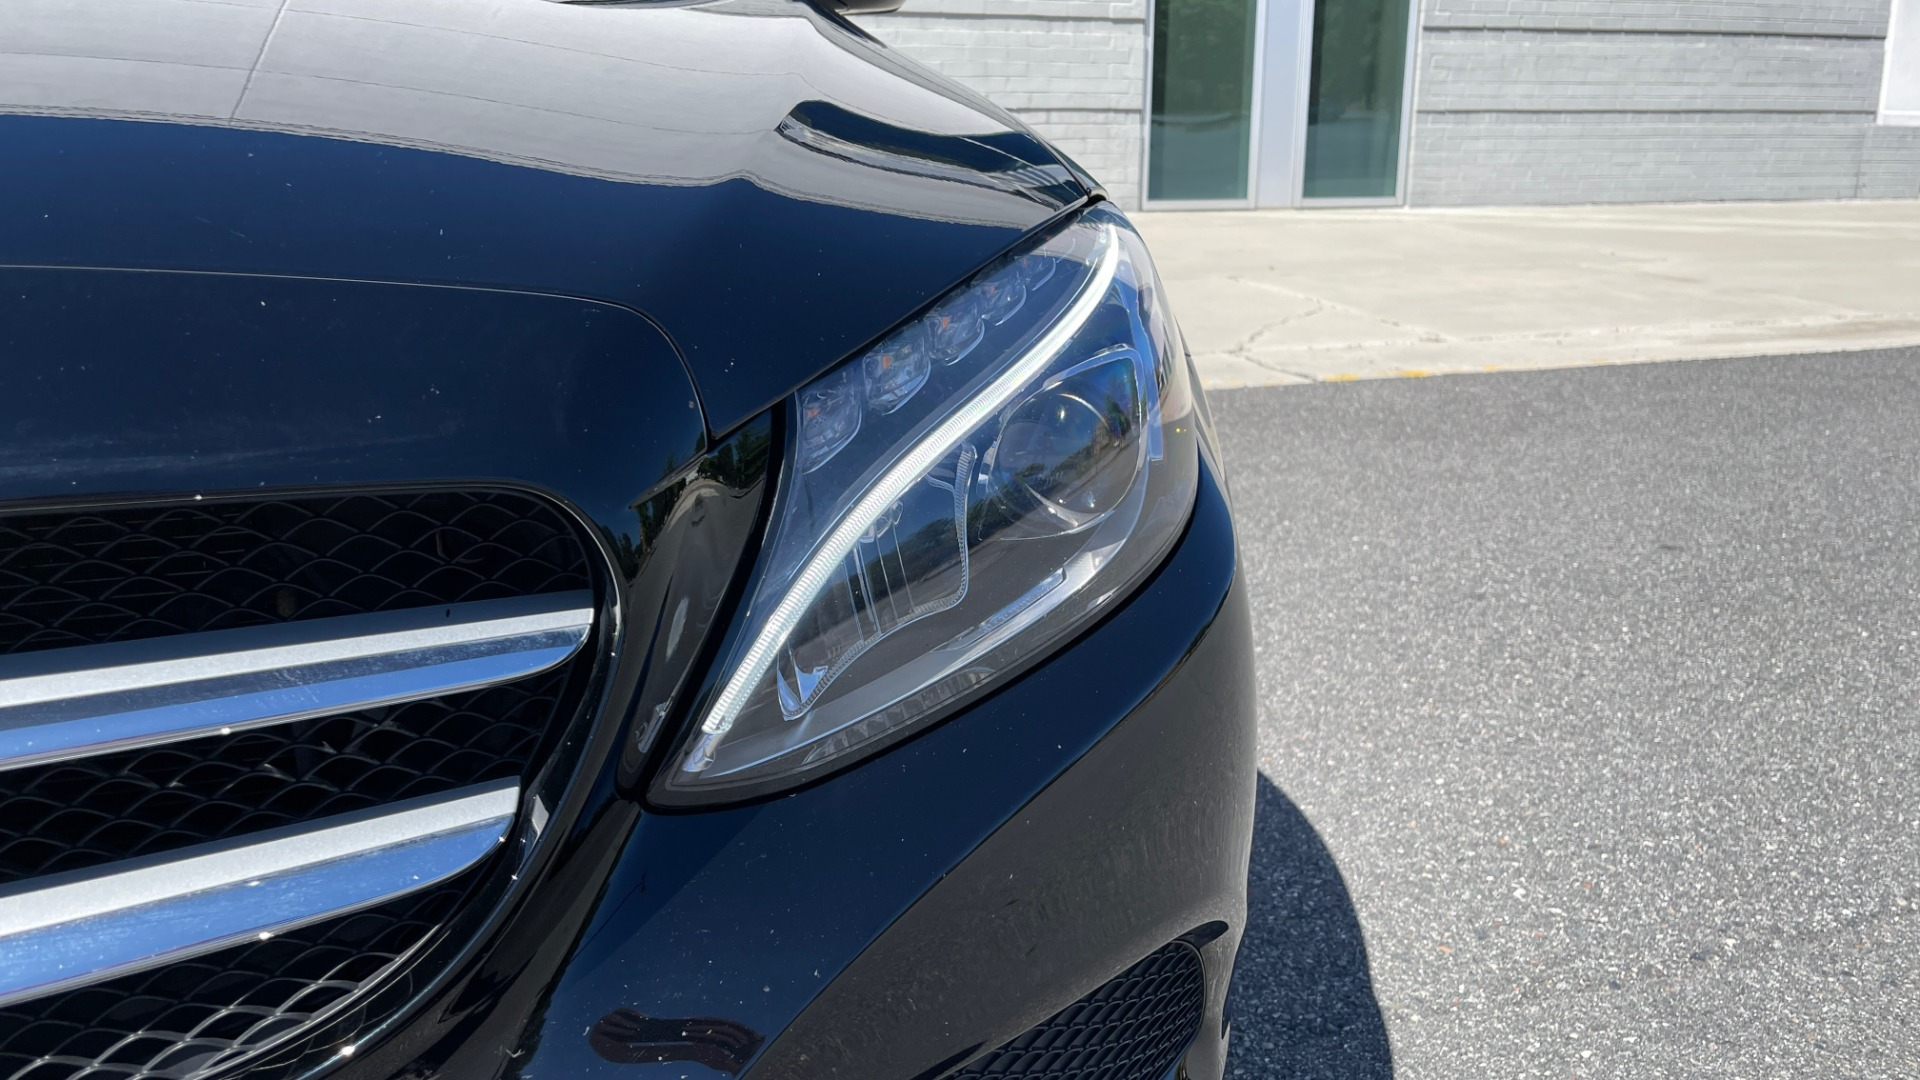 Used 2018 Mercedes-Benz C-CLASS C 300 PREMIUM / APPLE CARPLAY / SUNROOF / REARVIEW for sale $31,995 at Formula Imports in Charlotte NC 28227 12